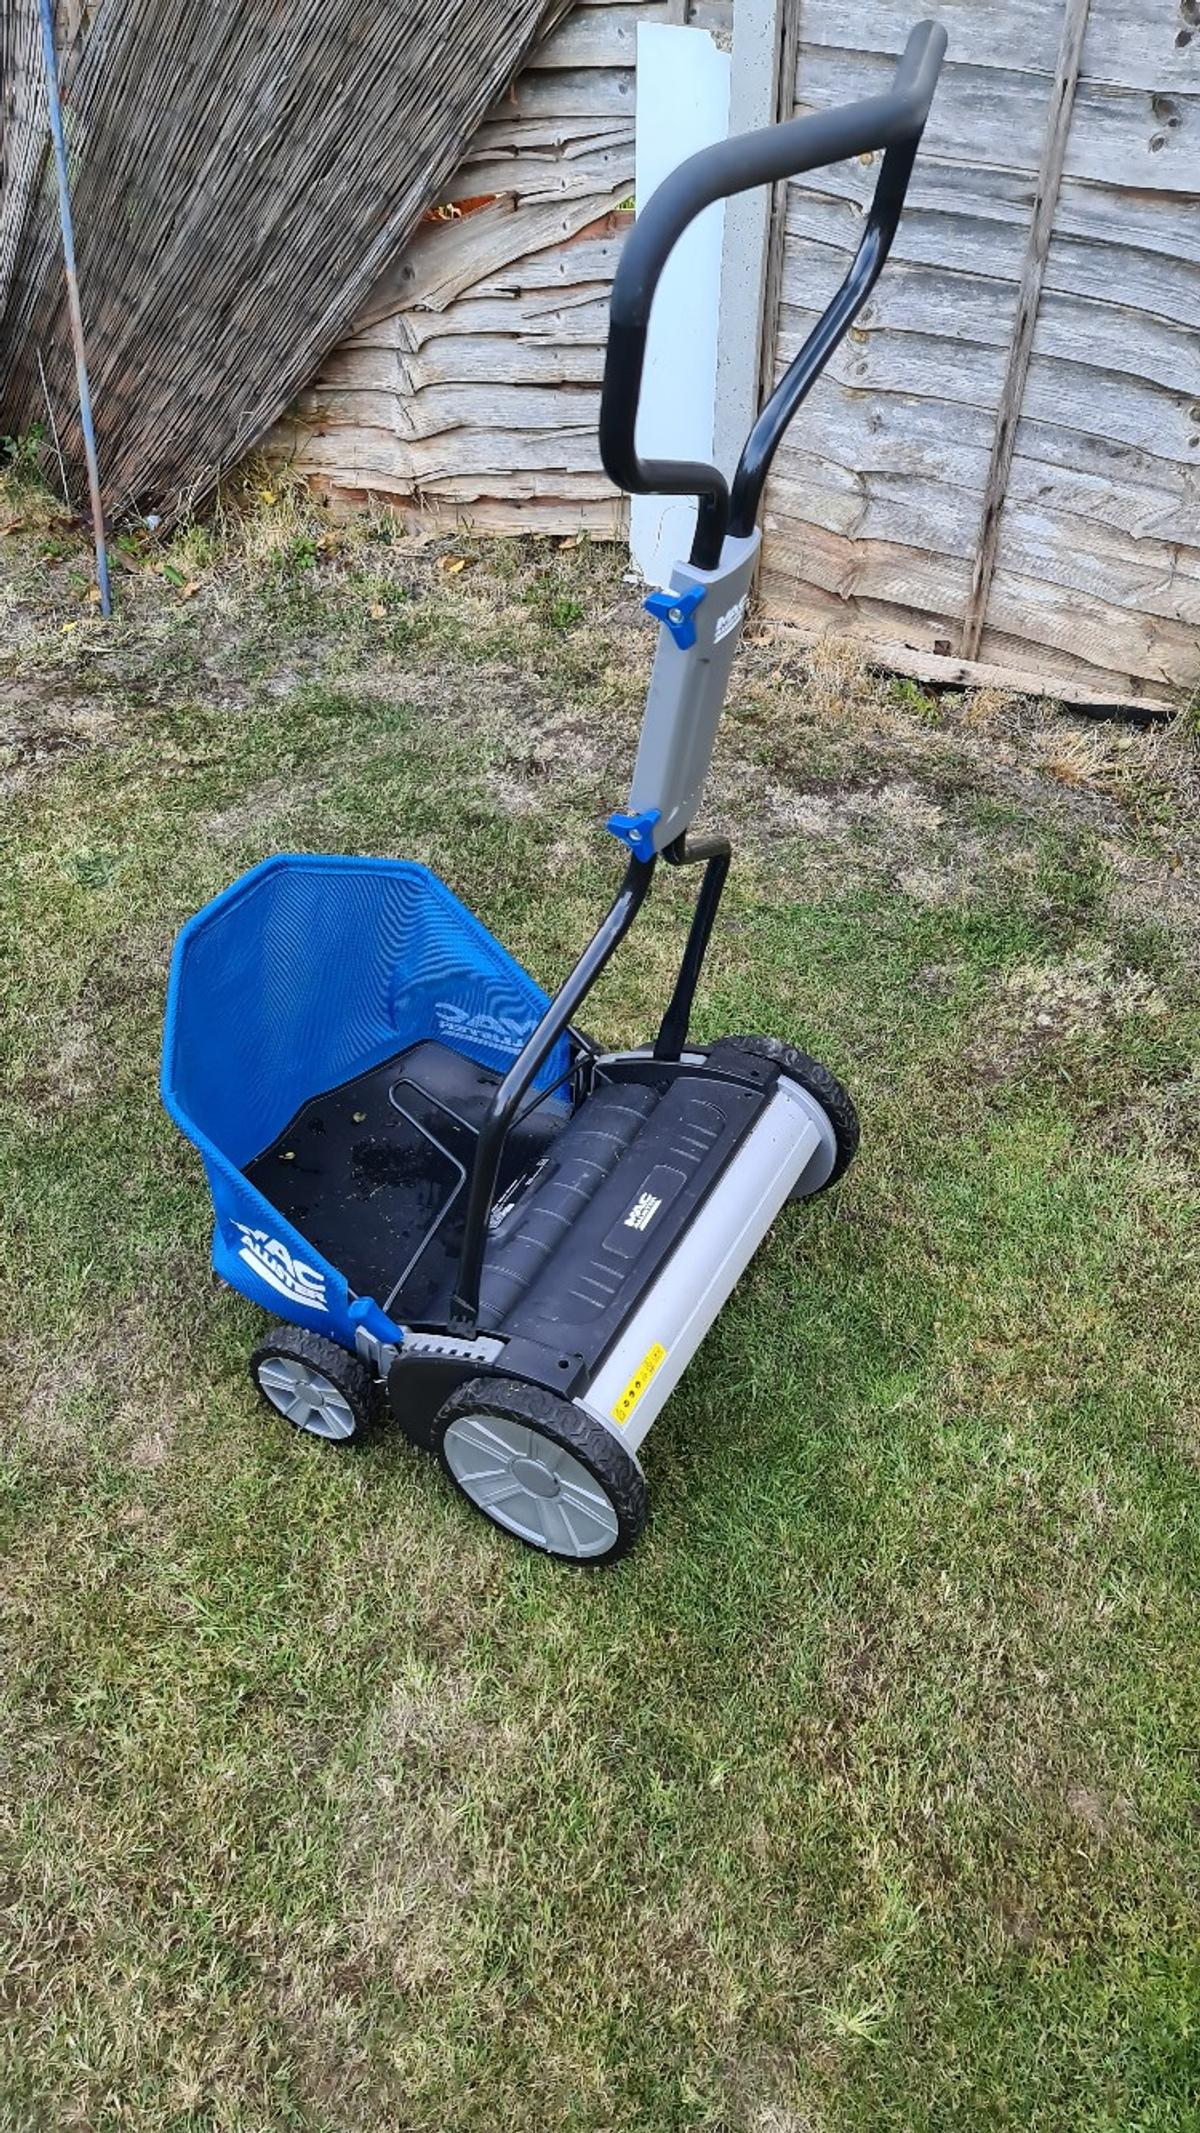 In excellent condition. Suitable and sturdy. Robust grass collector. More ideal for maintenance of longer grass Collection only